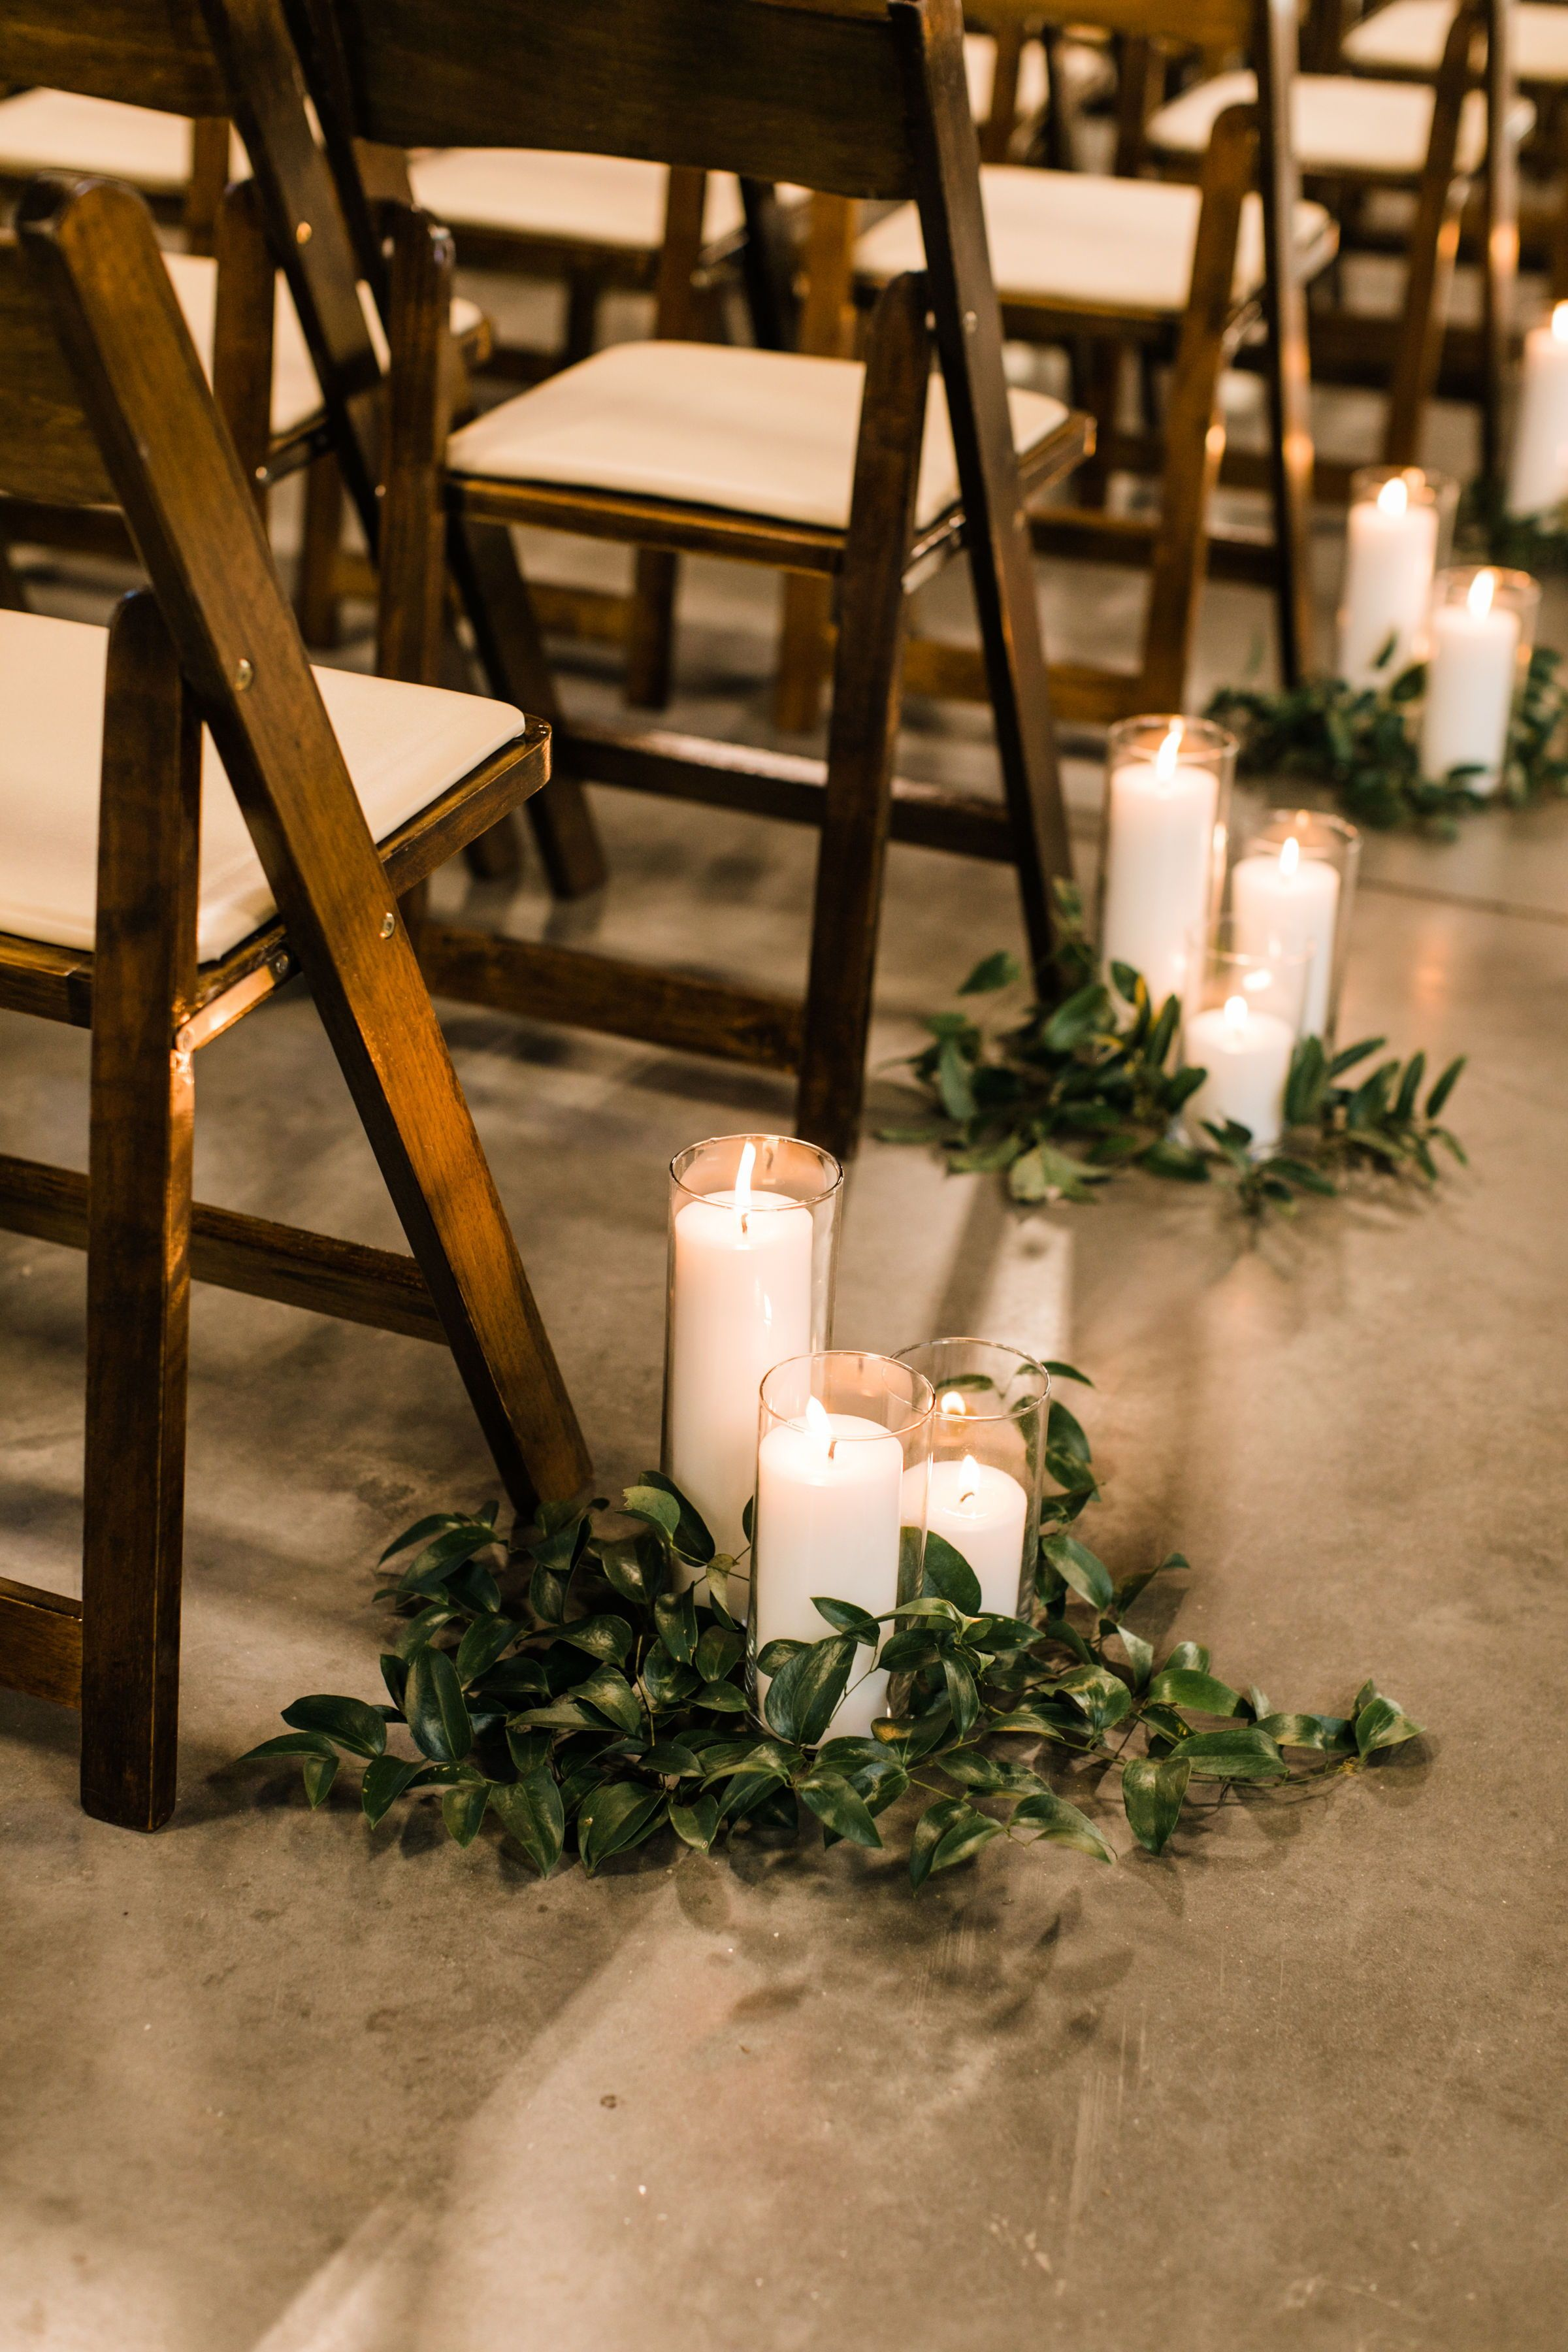 Rustic Wedding Ceremony Isle Candles and Decor - Molly and Marc's Warehouse Wedding at…